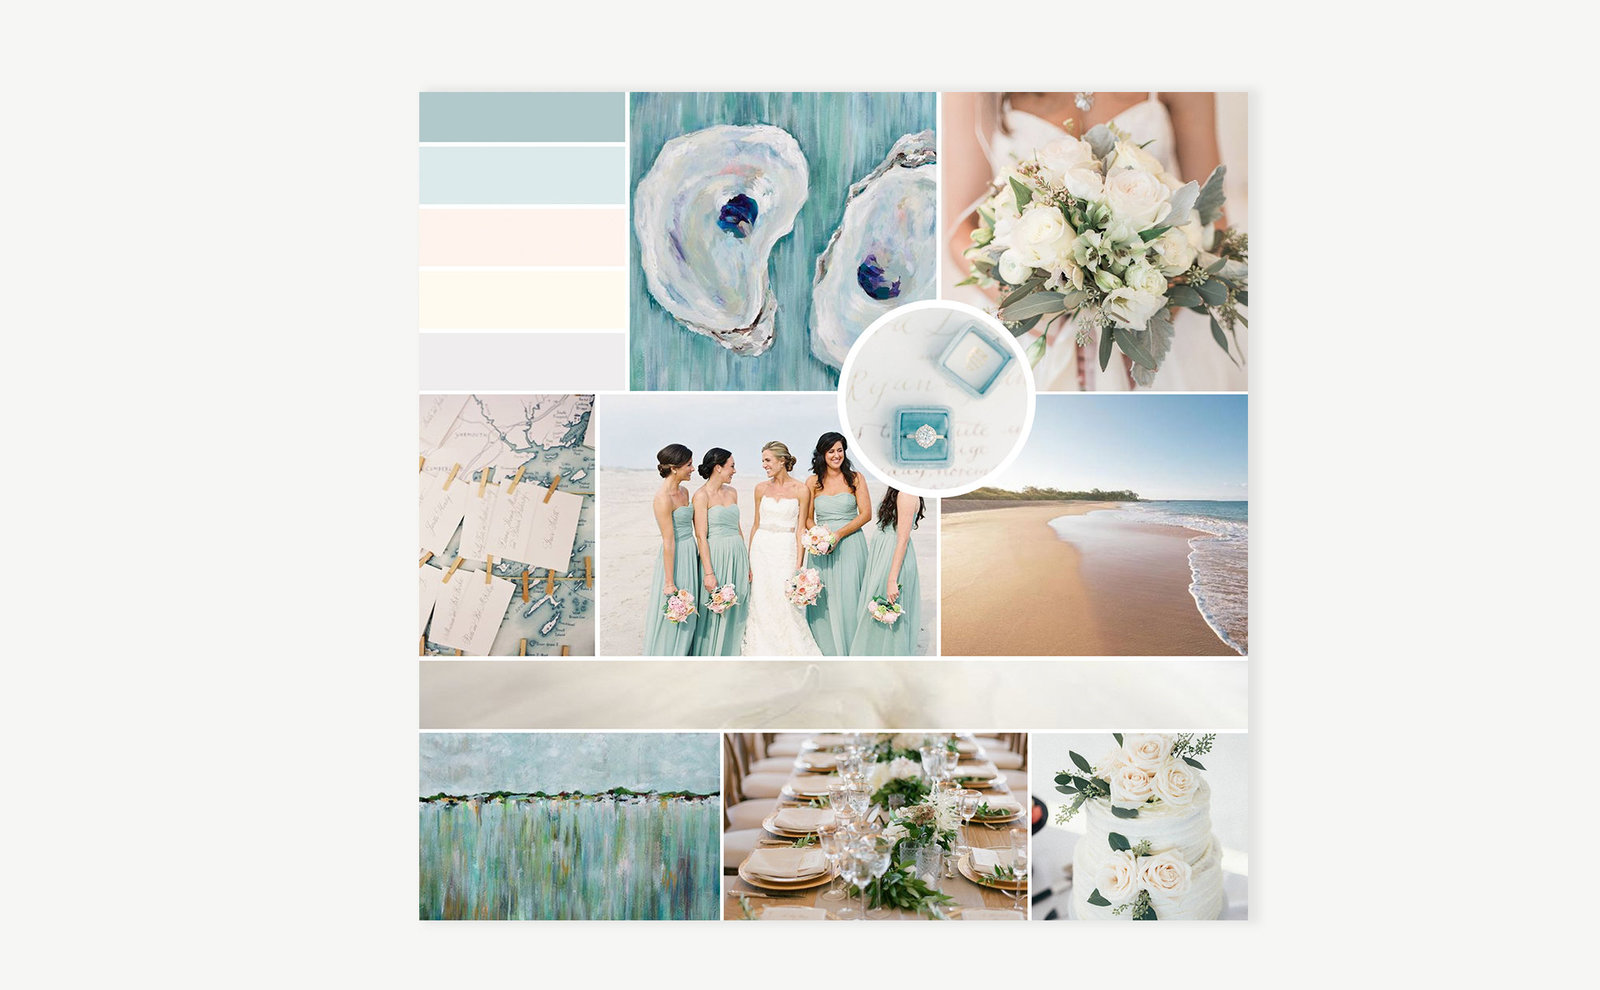 wedding-branding-mood-board-chesapeake-bay-maryland-kim-hovell